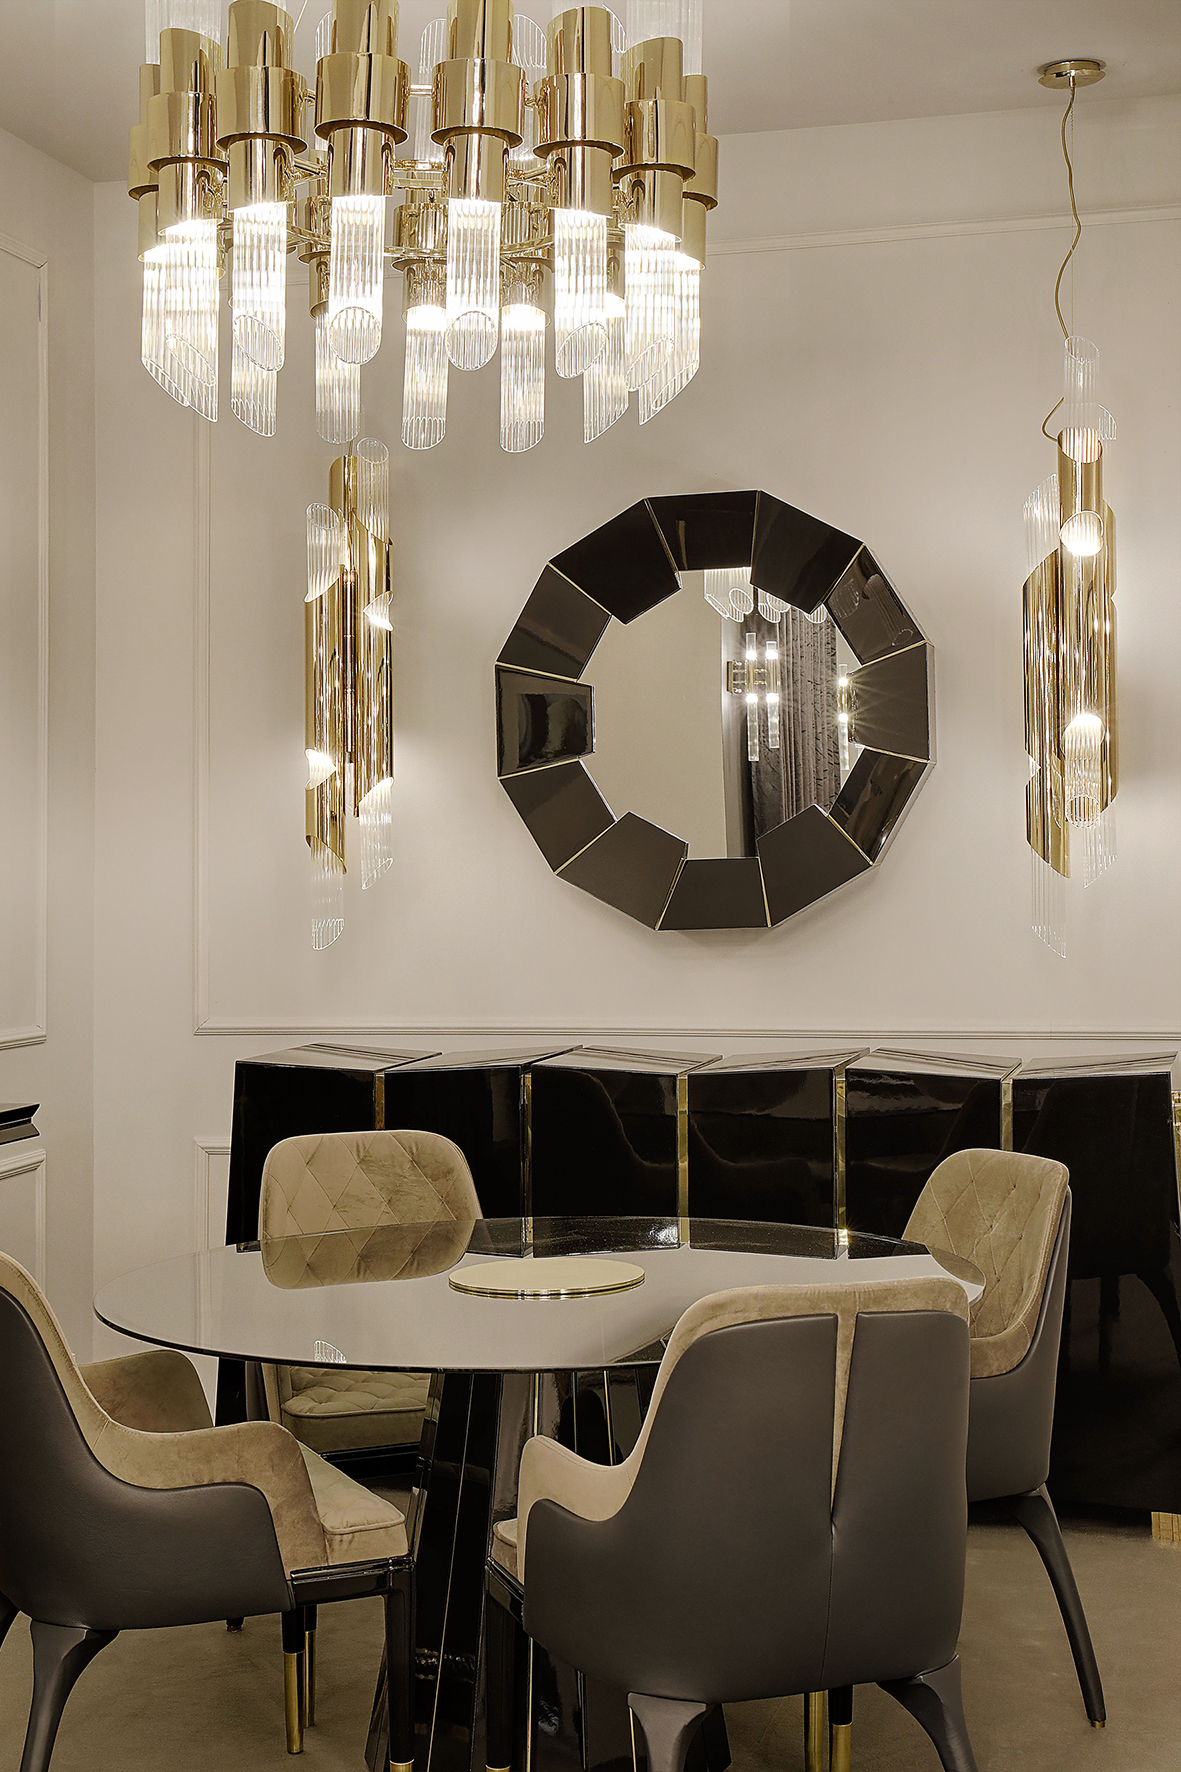 dining room How to Decorate The Dining Room With Luxury Mirrors 11 How to Decorate The Dining Room With Luxury Mirrors